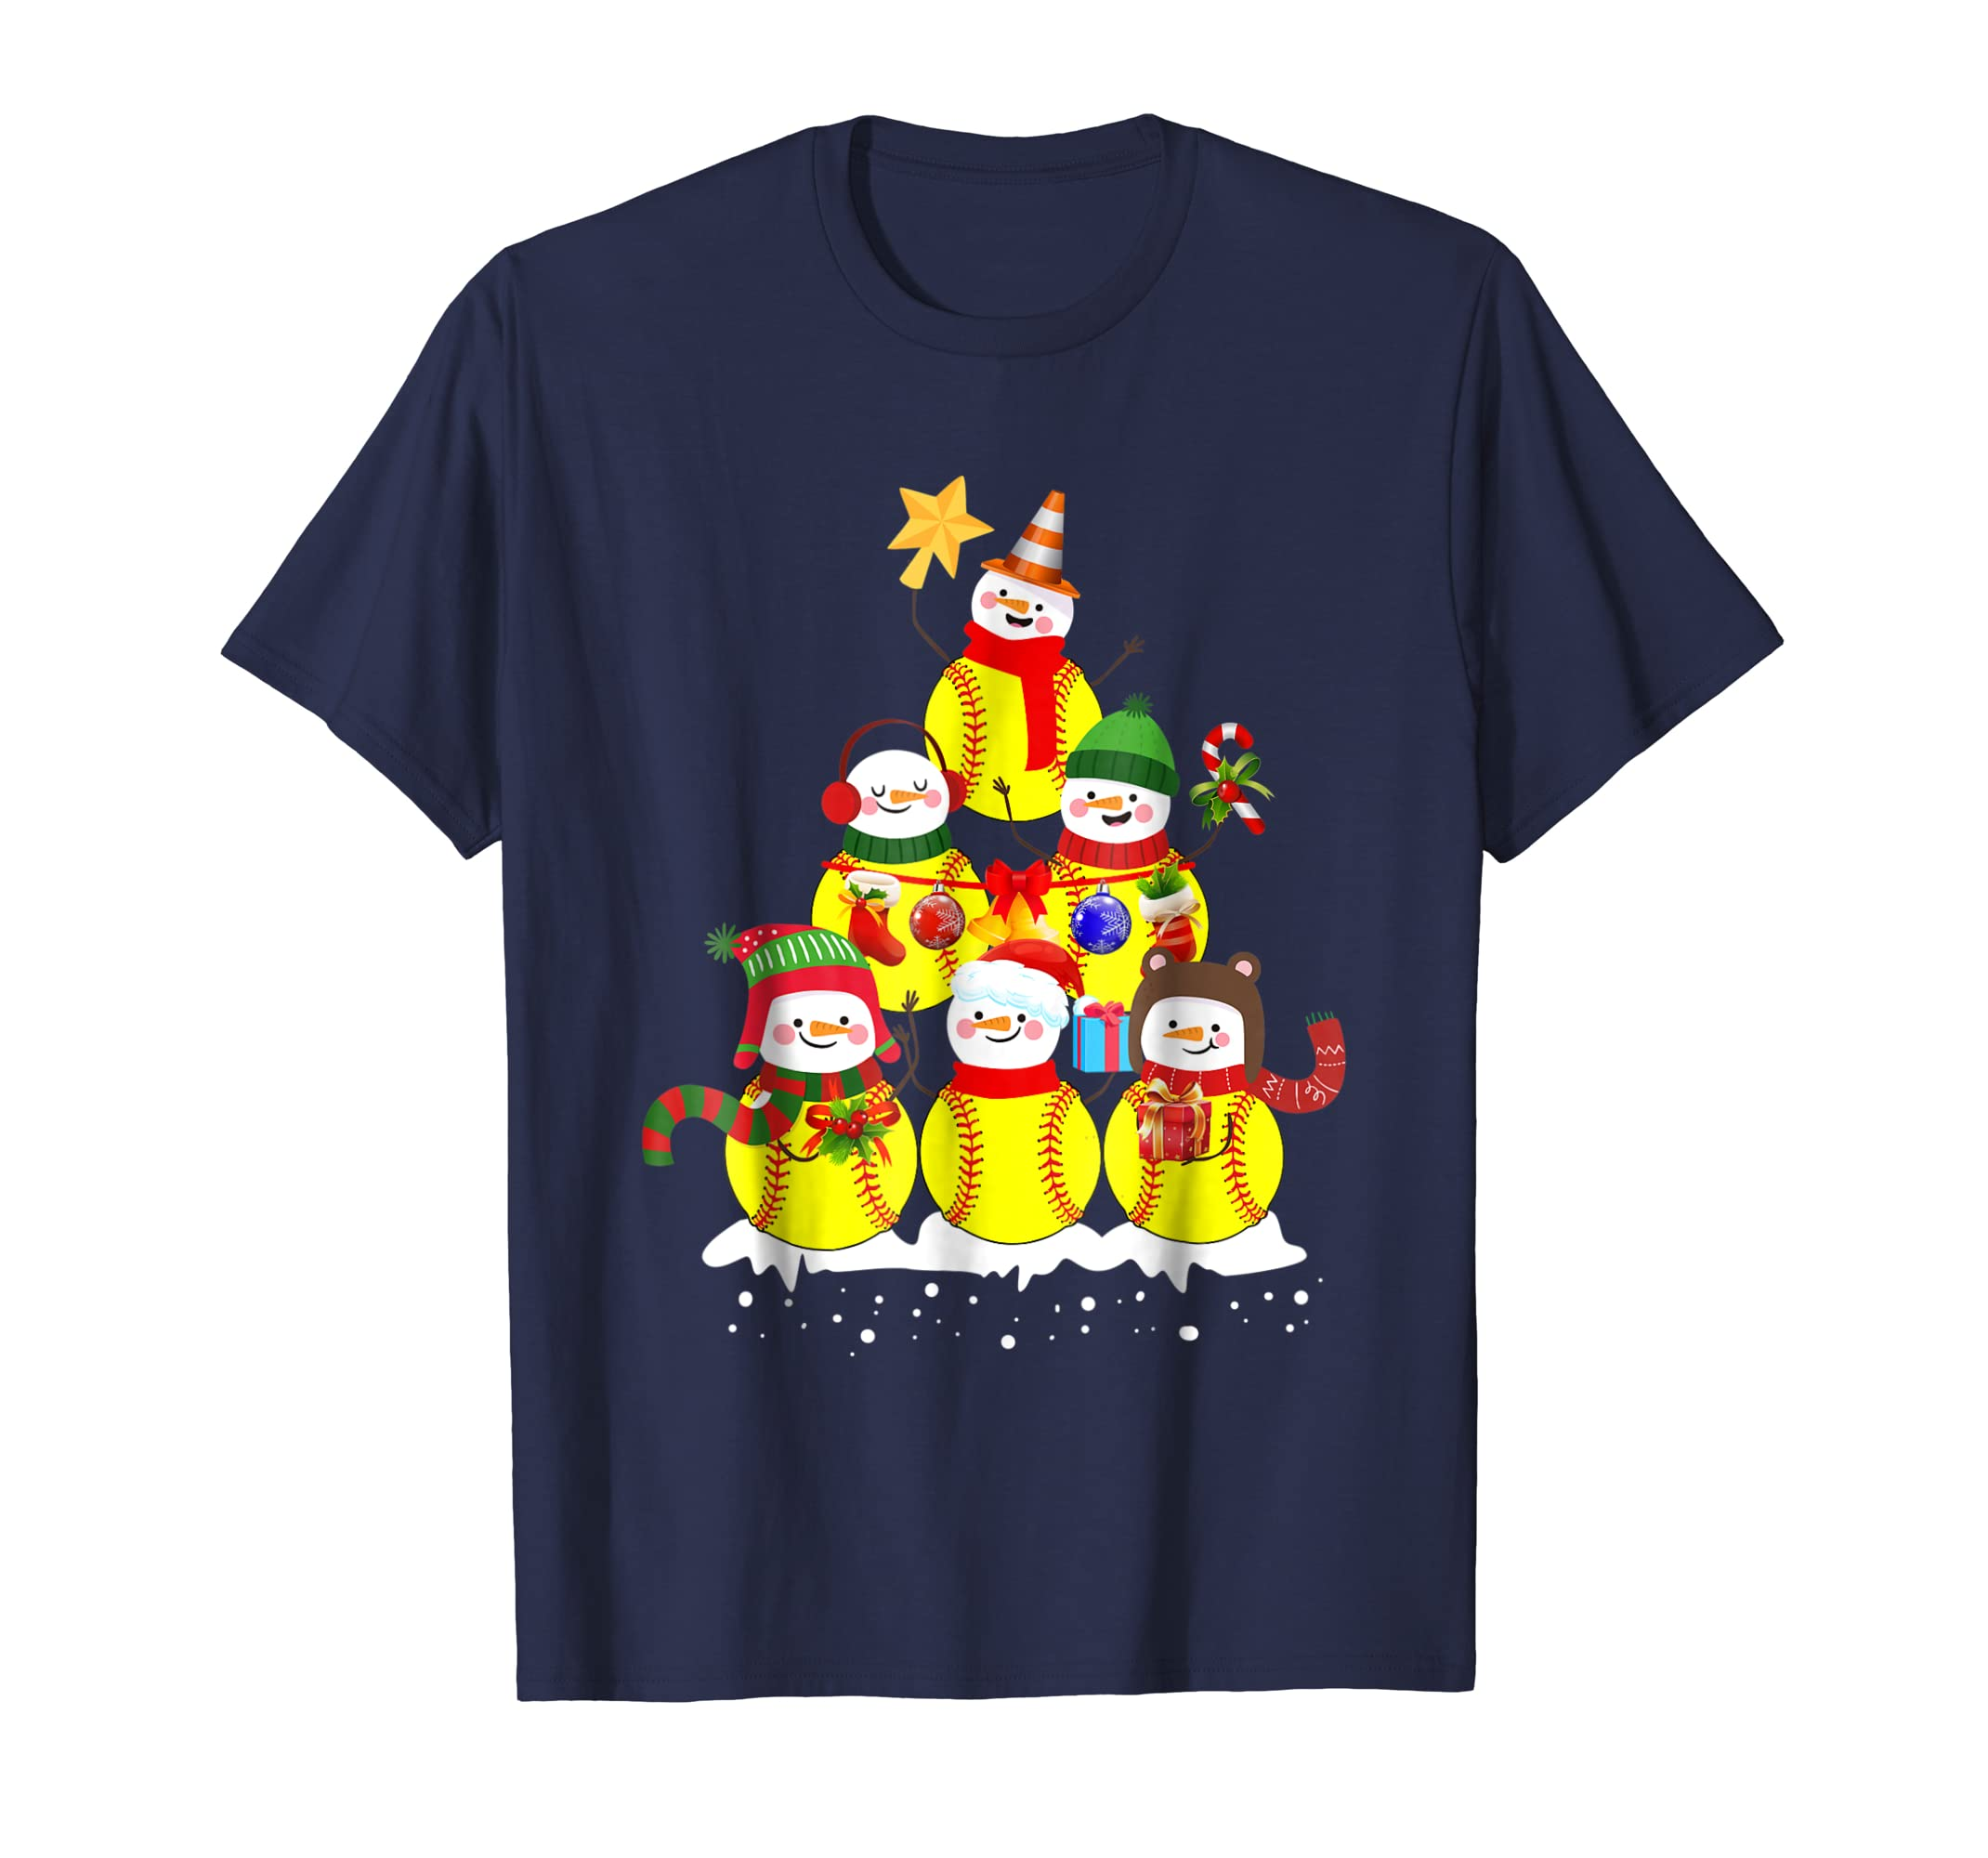 Softball Snowman Christmas Tree T shirt Funny Xmas TShirt-azvn